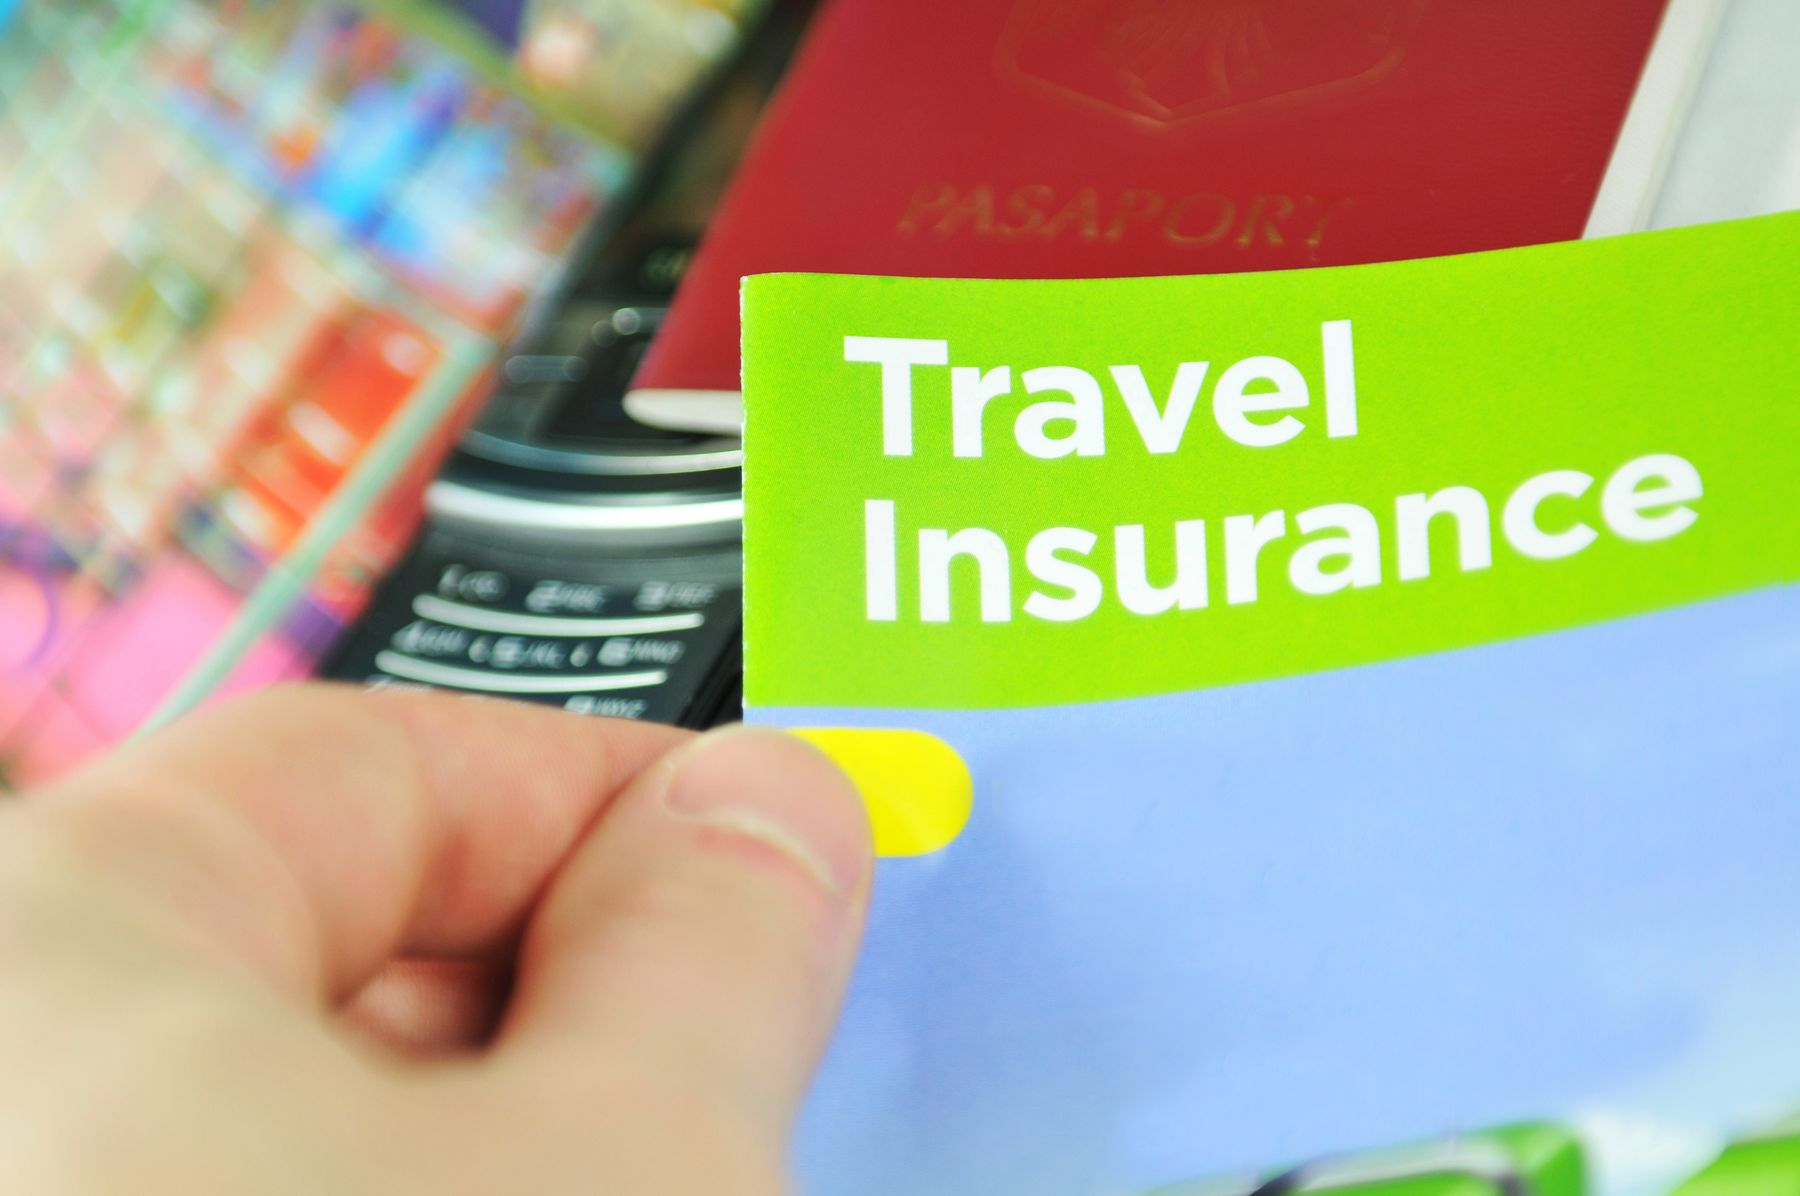 How to plan travel in 2021: make sure you get comprehensive travel insurance